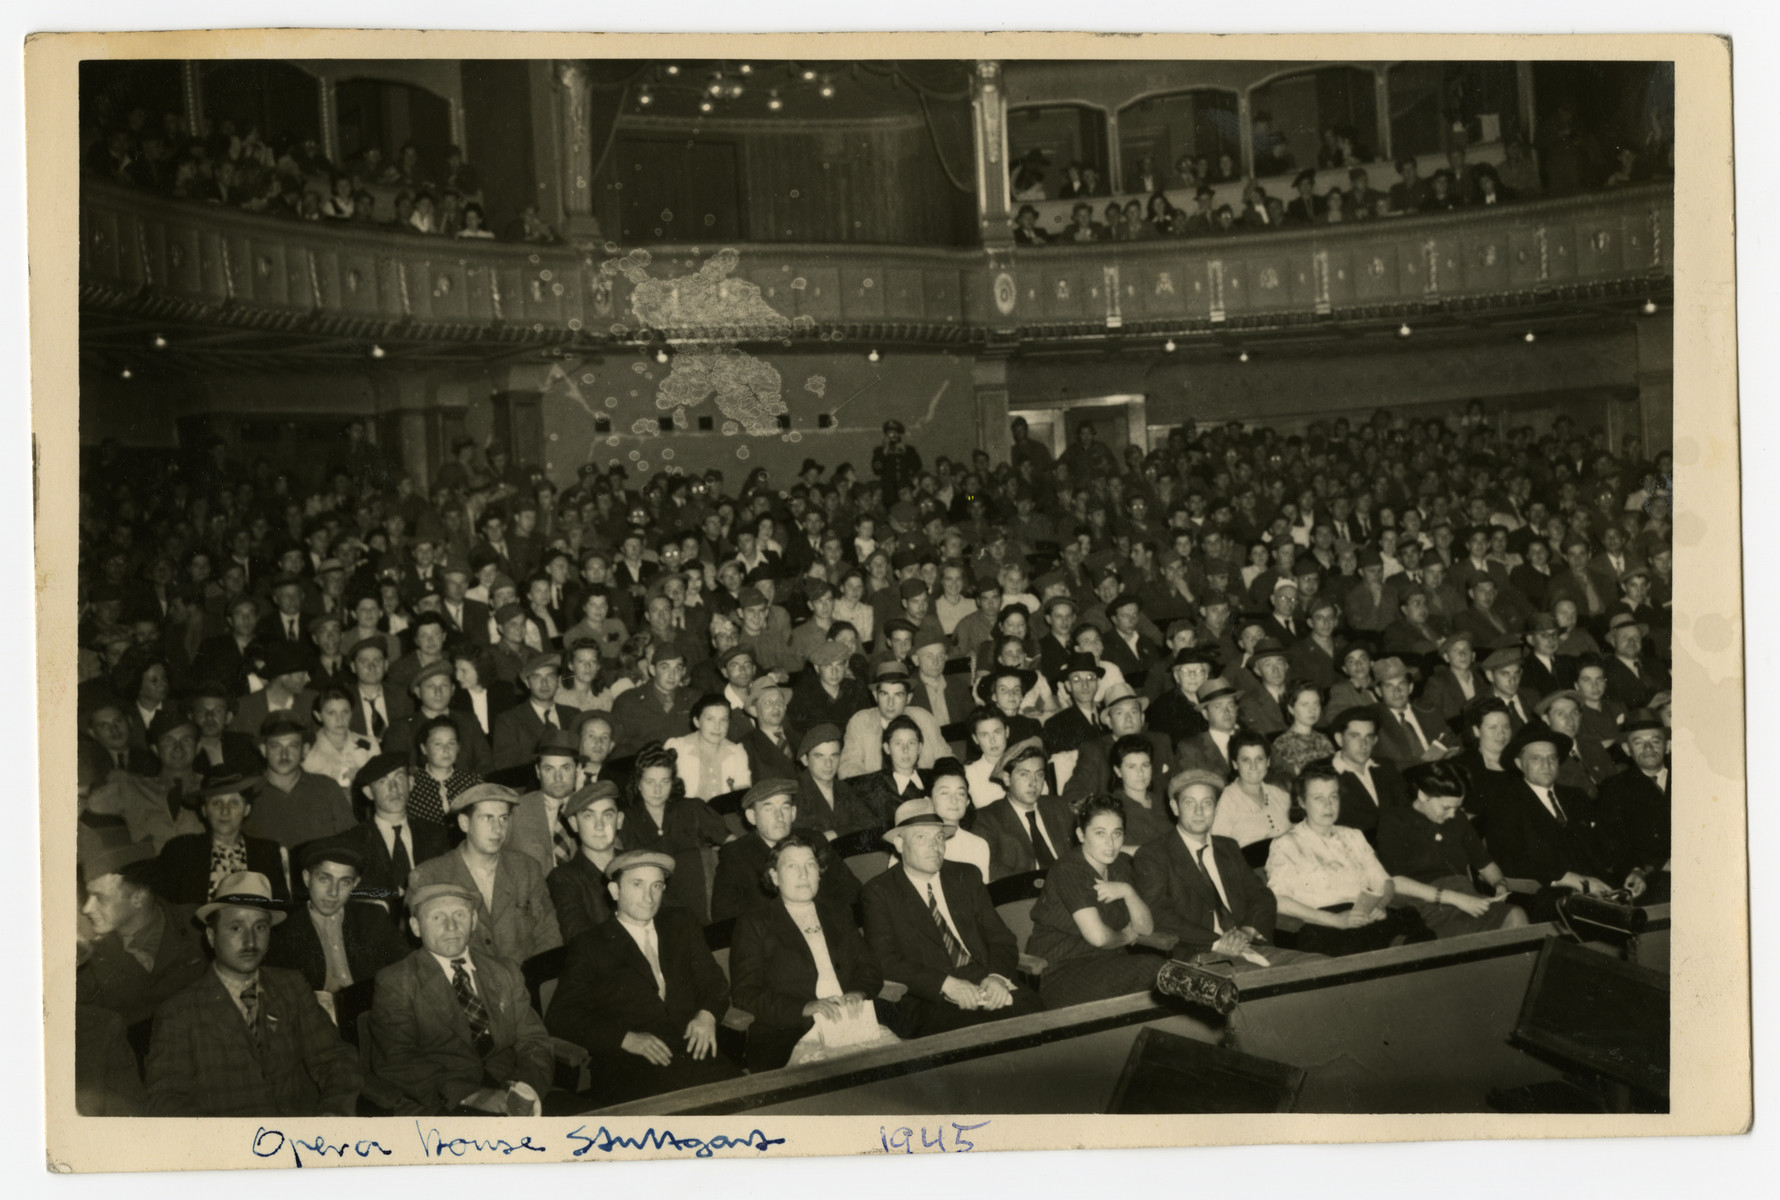 Jewish displaced persons attend the first High Holiday services after liberation held in the Stuttgart opera house.